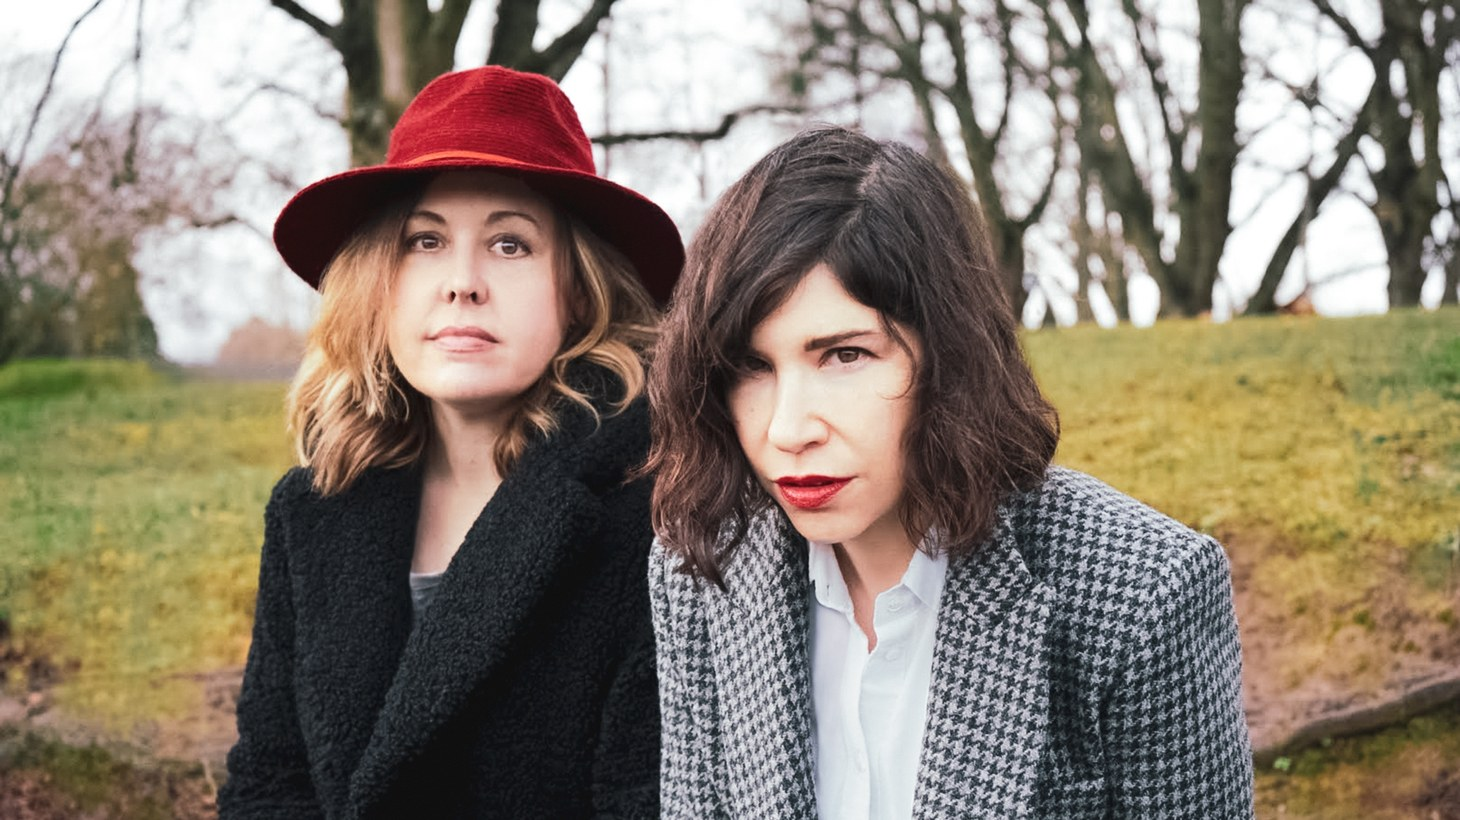 Carrie Brownstein and Corin Tucker, better known as Sleater-Kinney, got down to business in 2020 and recorded an album in their Portland homebase with local musicians.